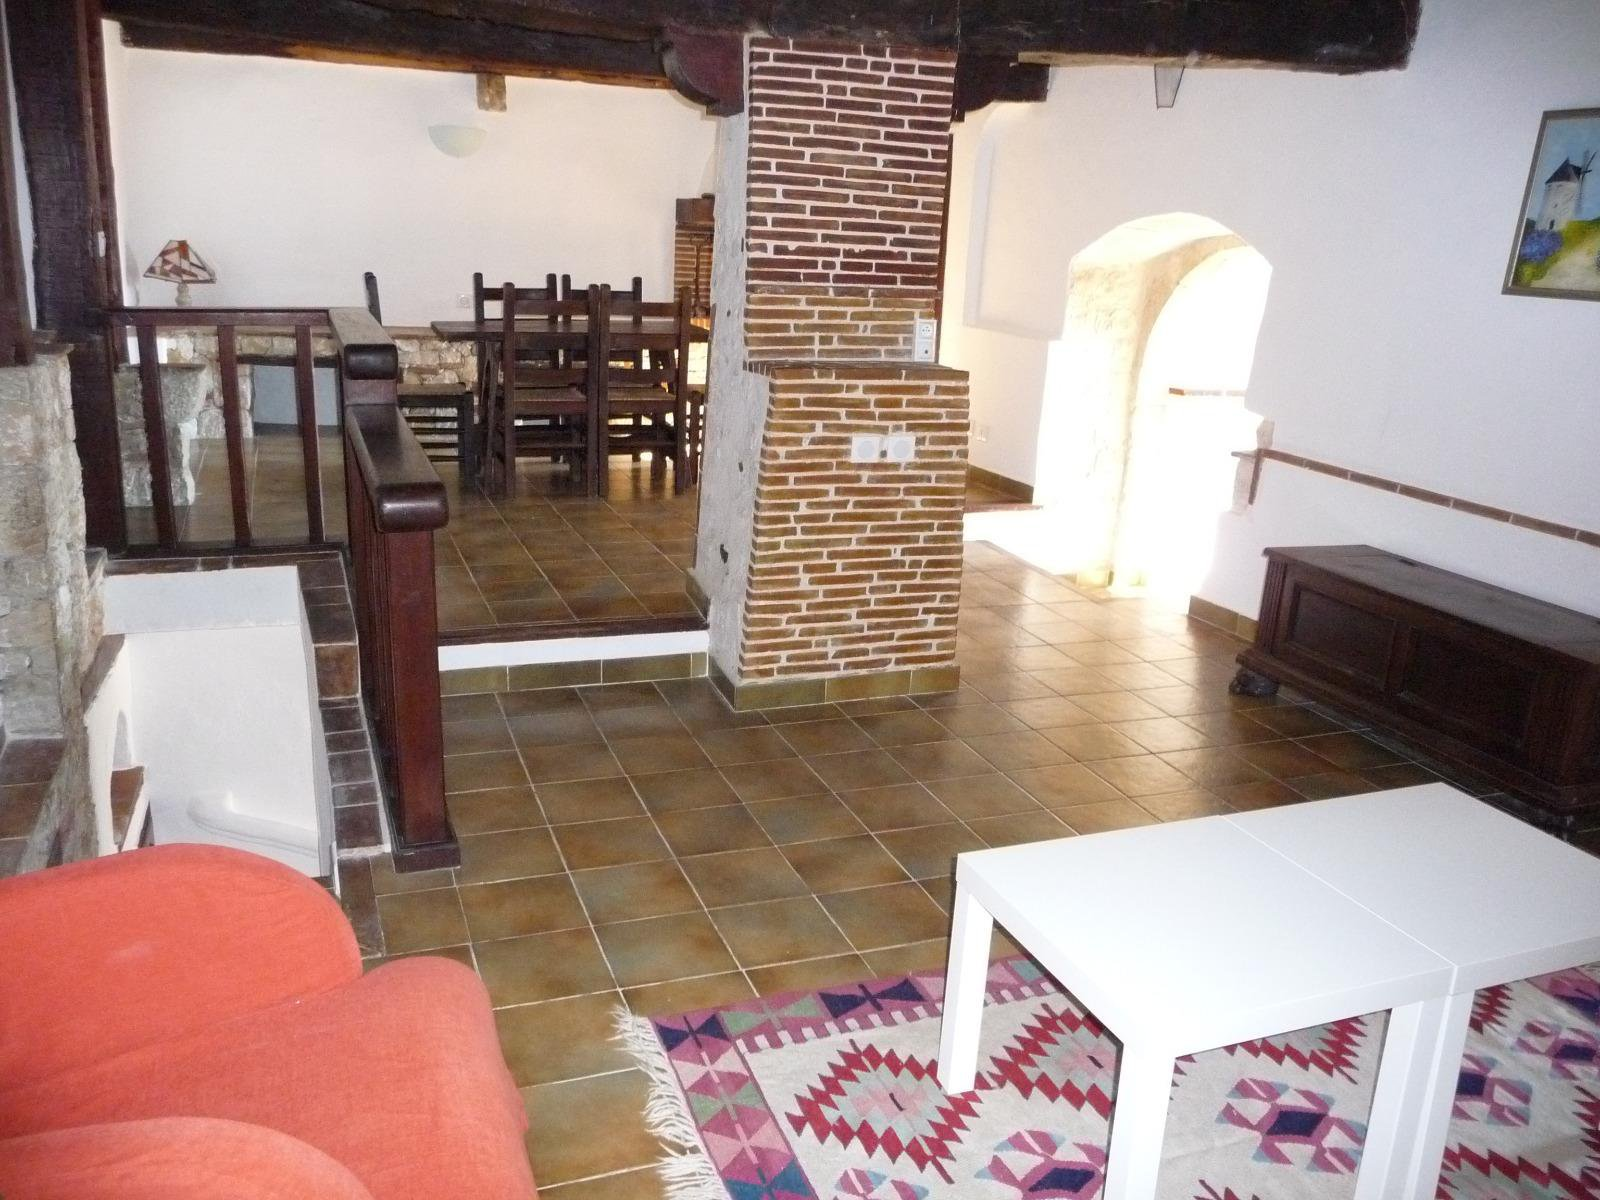 In the old village, house 3/4 rooms immaculate with beautiful garden view